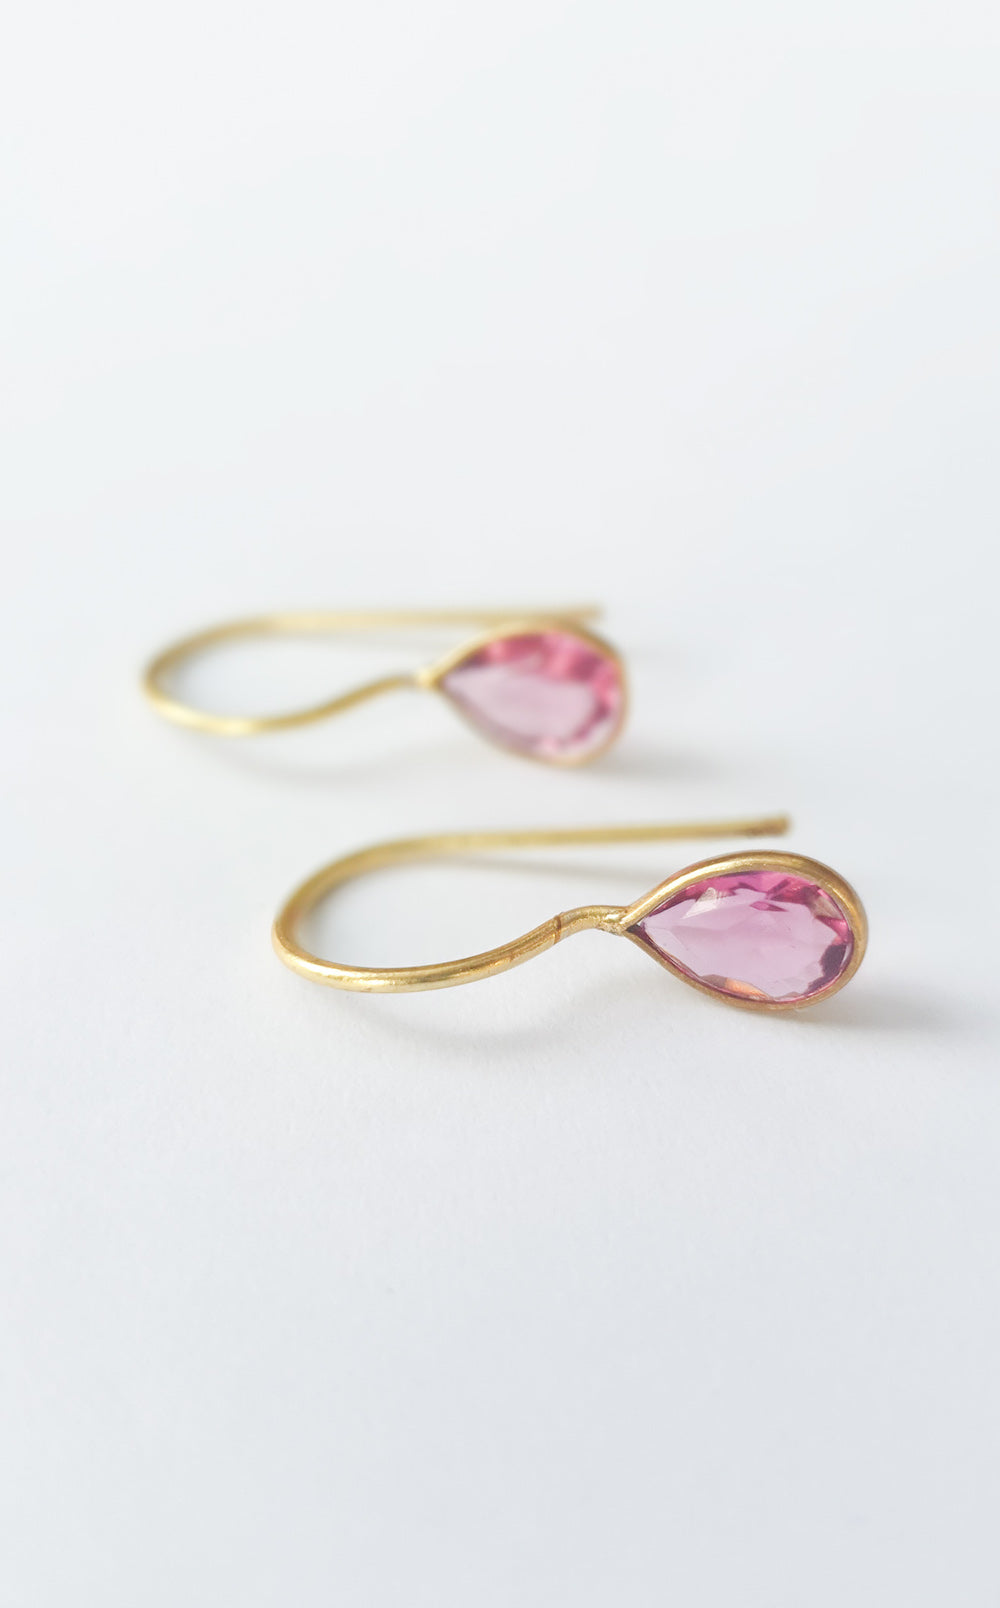 Small gold hook earrings with tear drop pink tourmaline